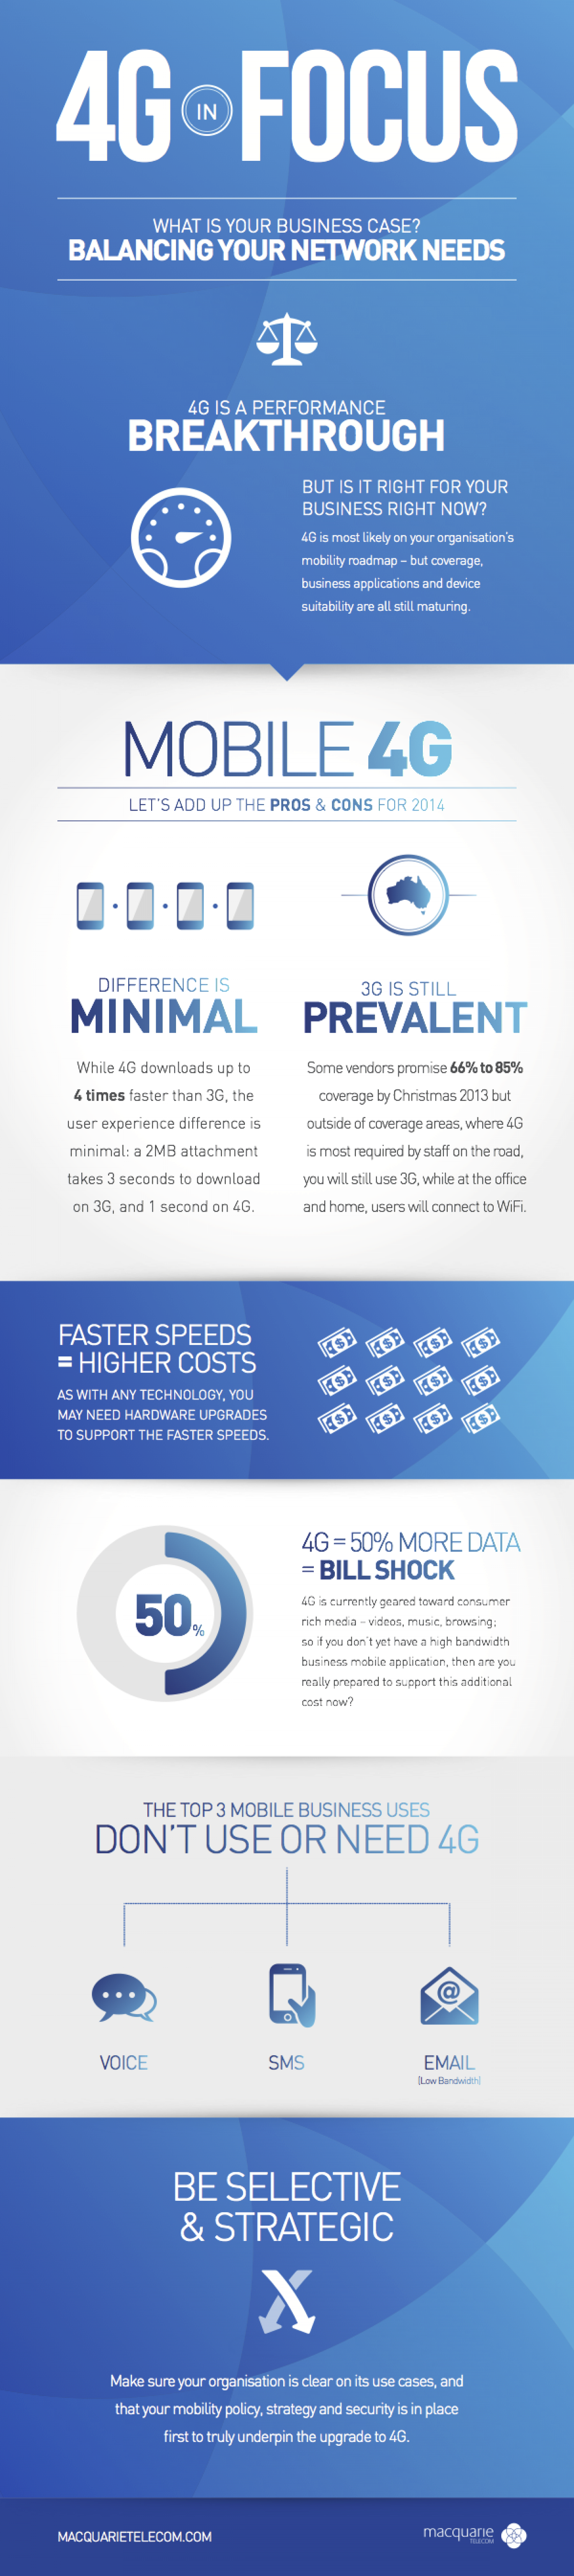 4G in Focus - What's Your Business Case? Infographic